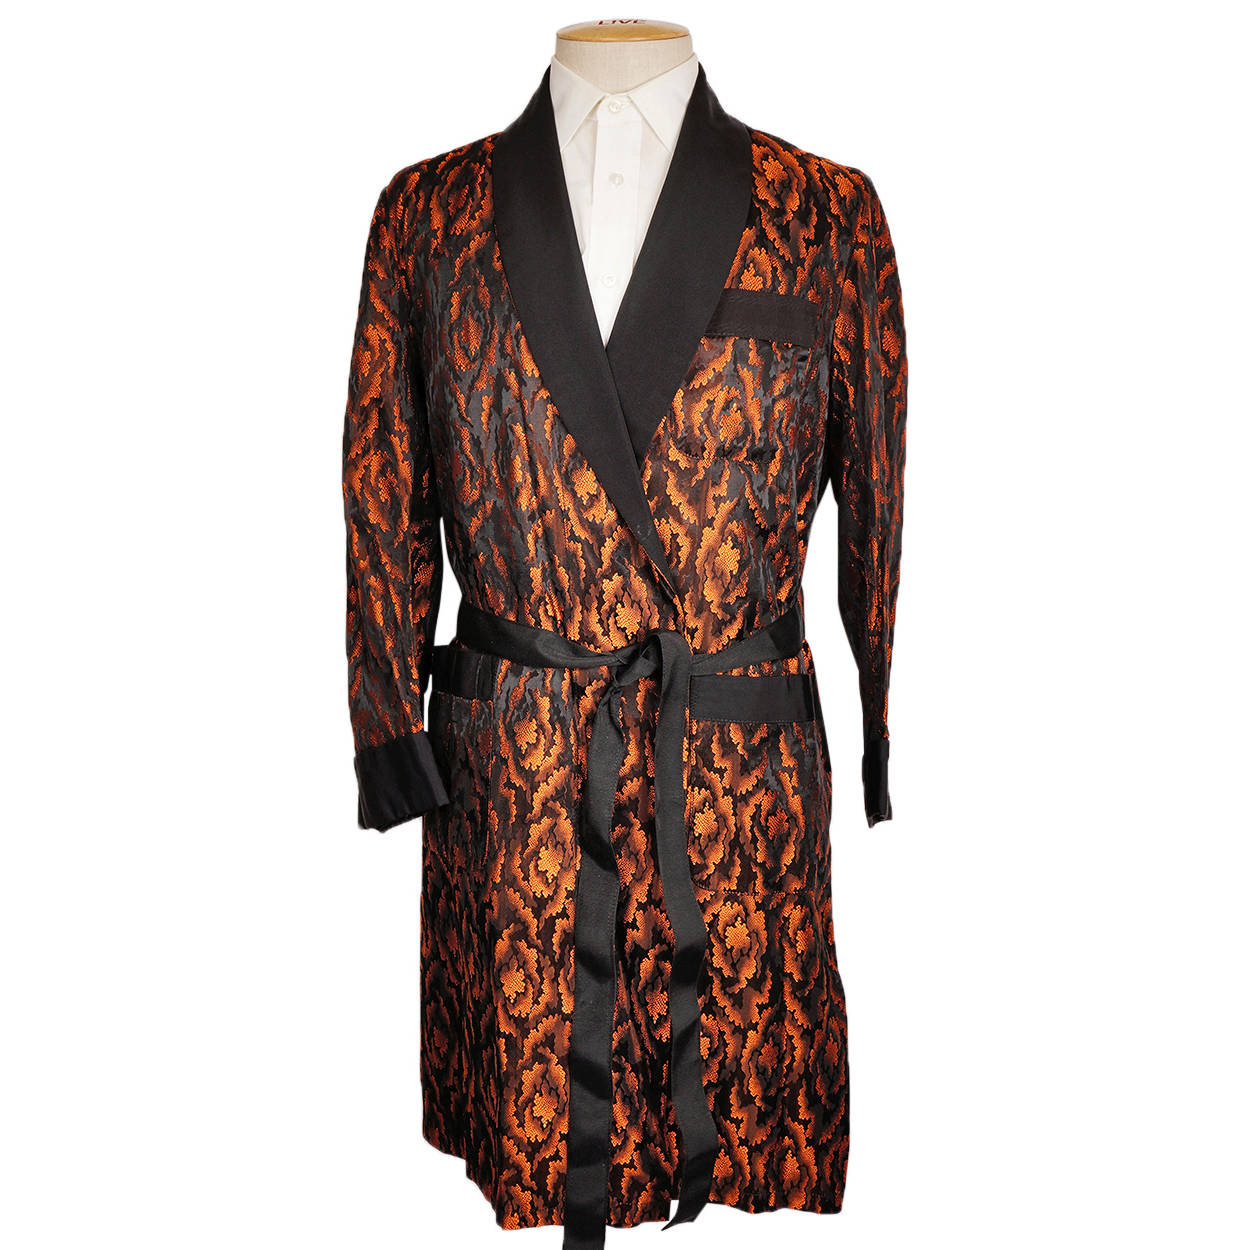 Vintage 1950s Mens Dressing Gown Orange and Black Pattern Lounging Rob